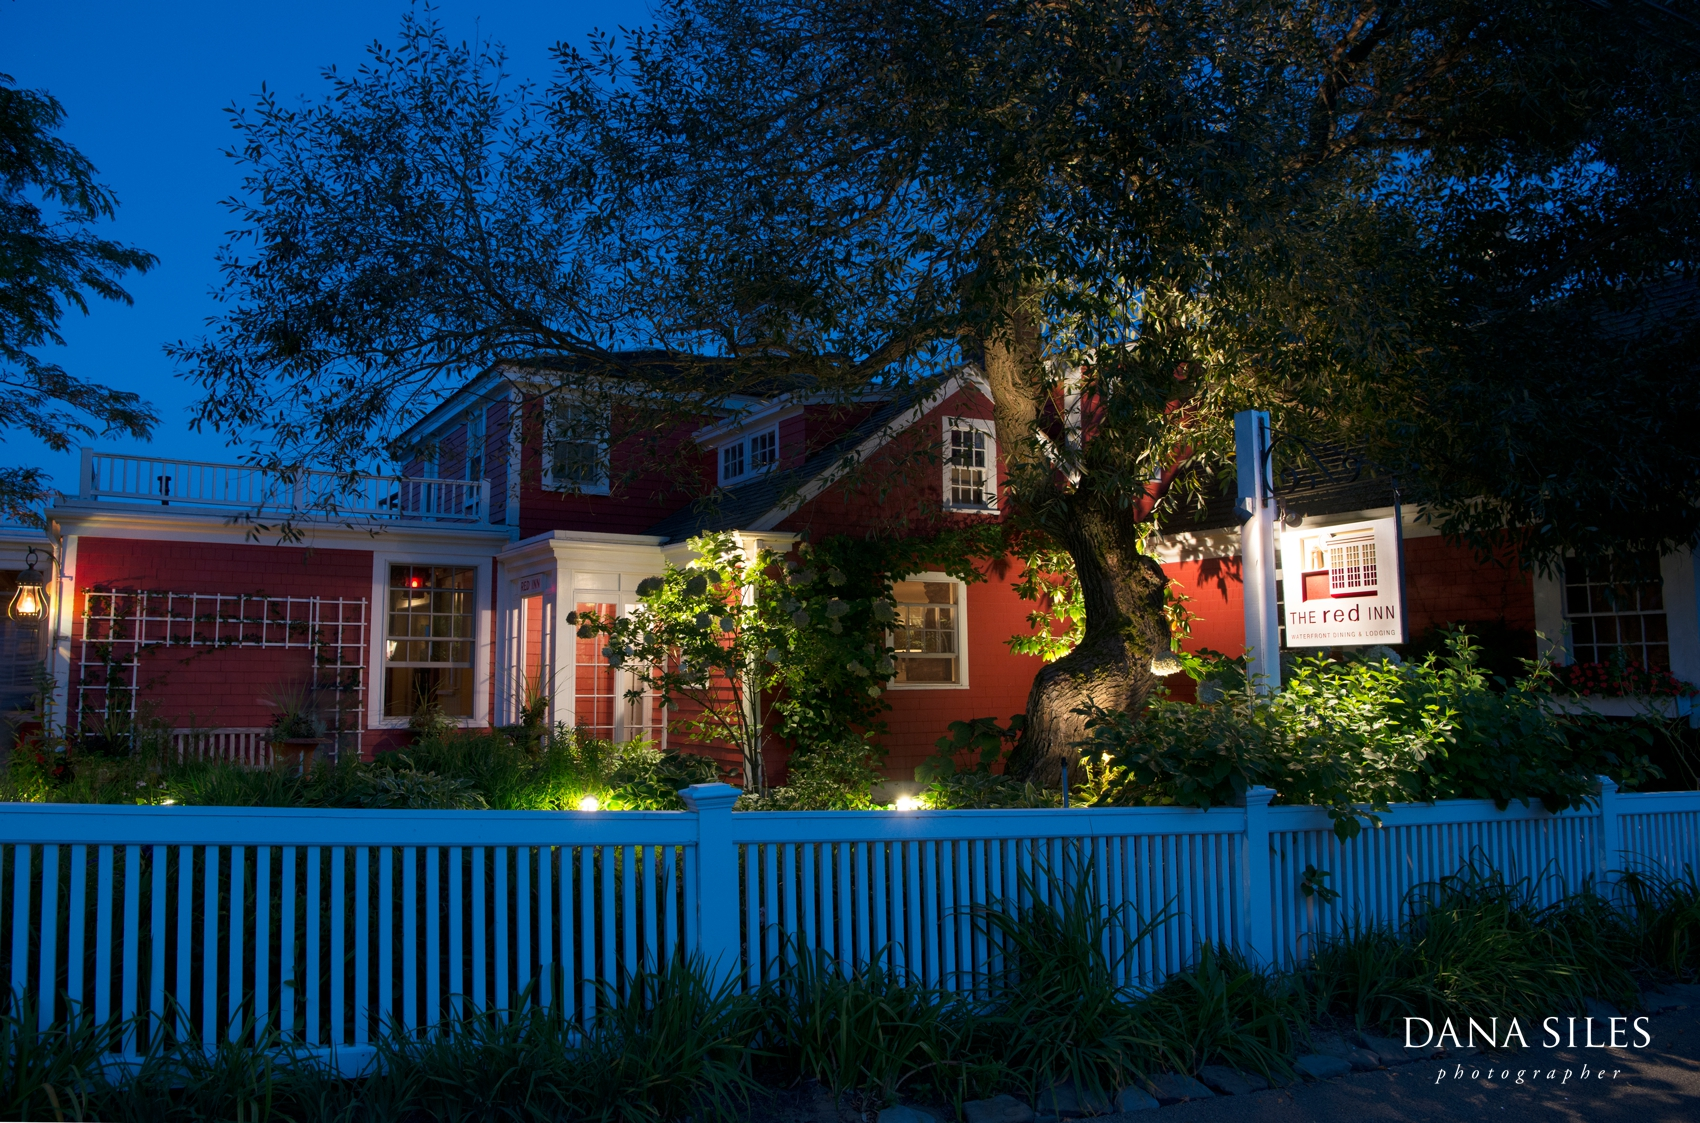 The-Red-Inn-Provincetown-wedding-event-venue